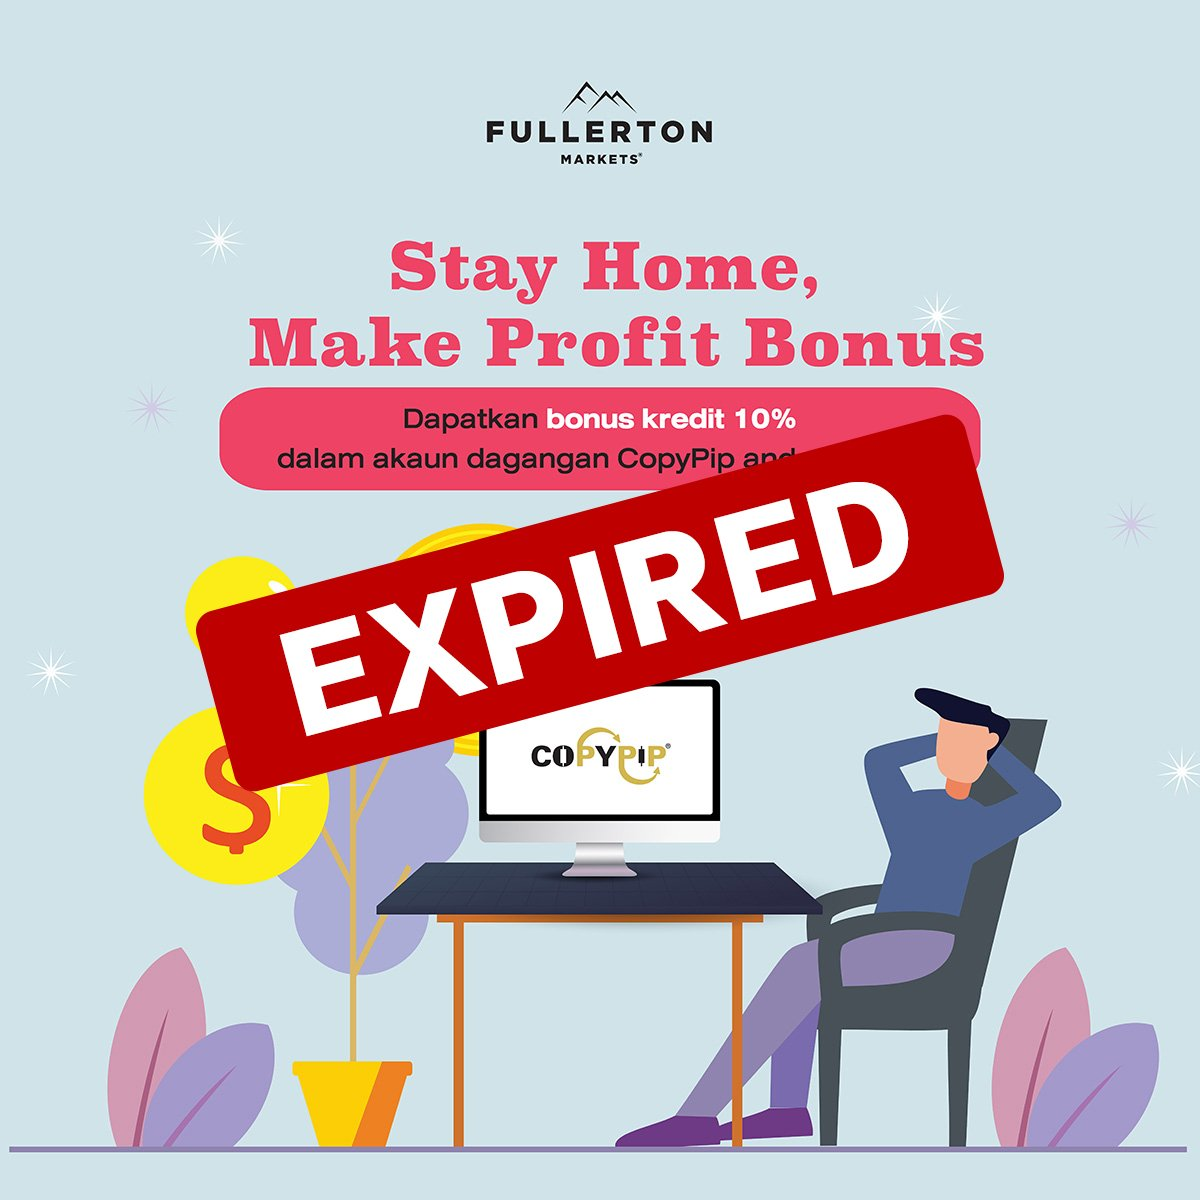 EXPIRED-MS_Stay Home Bonus_1200x1200